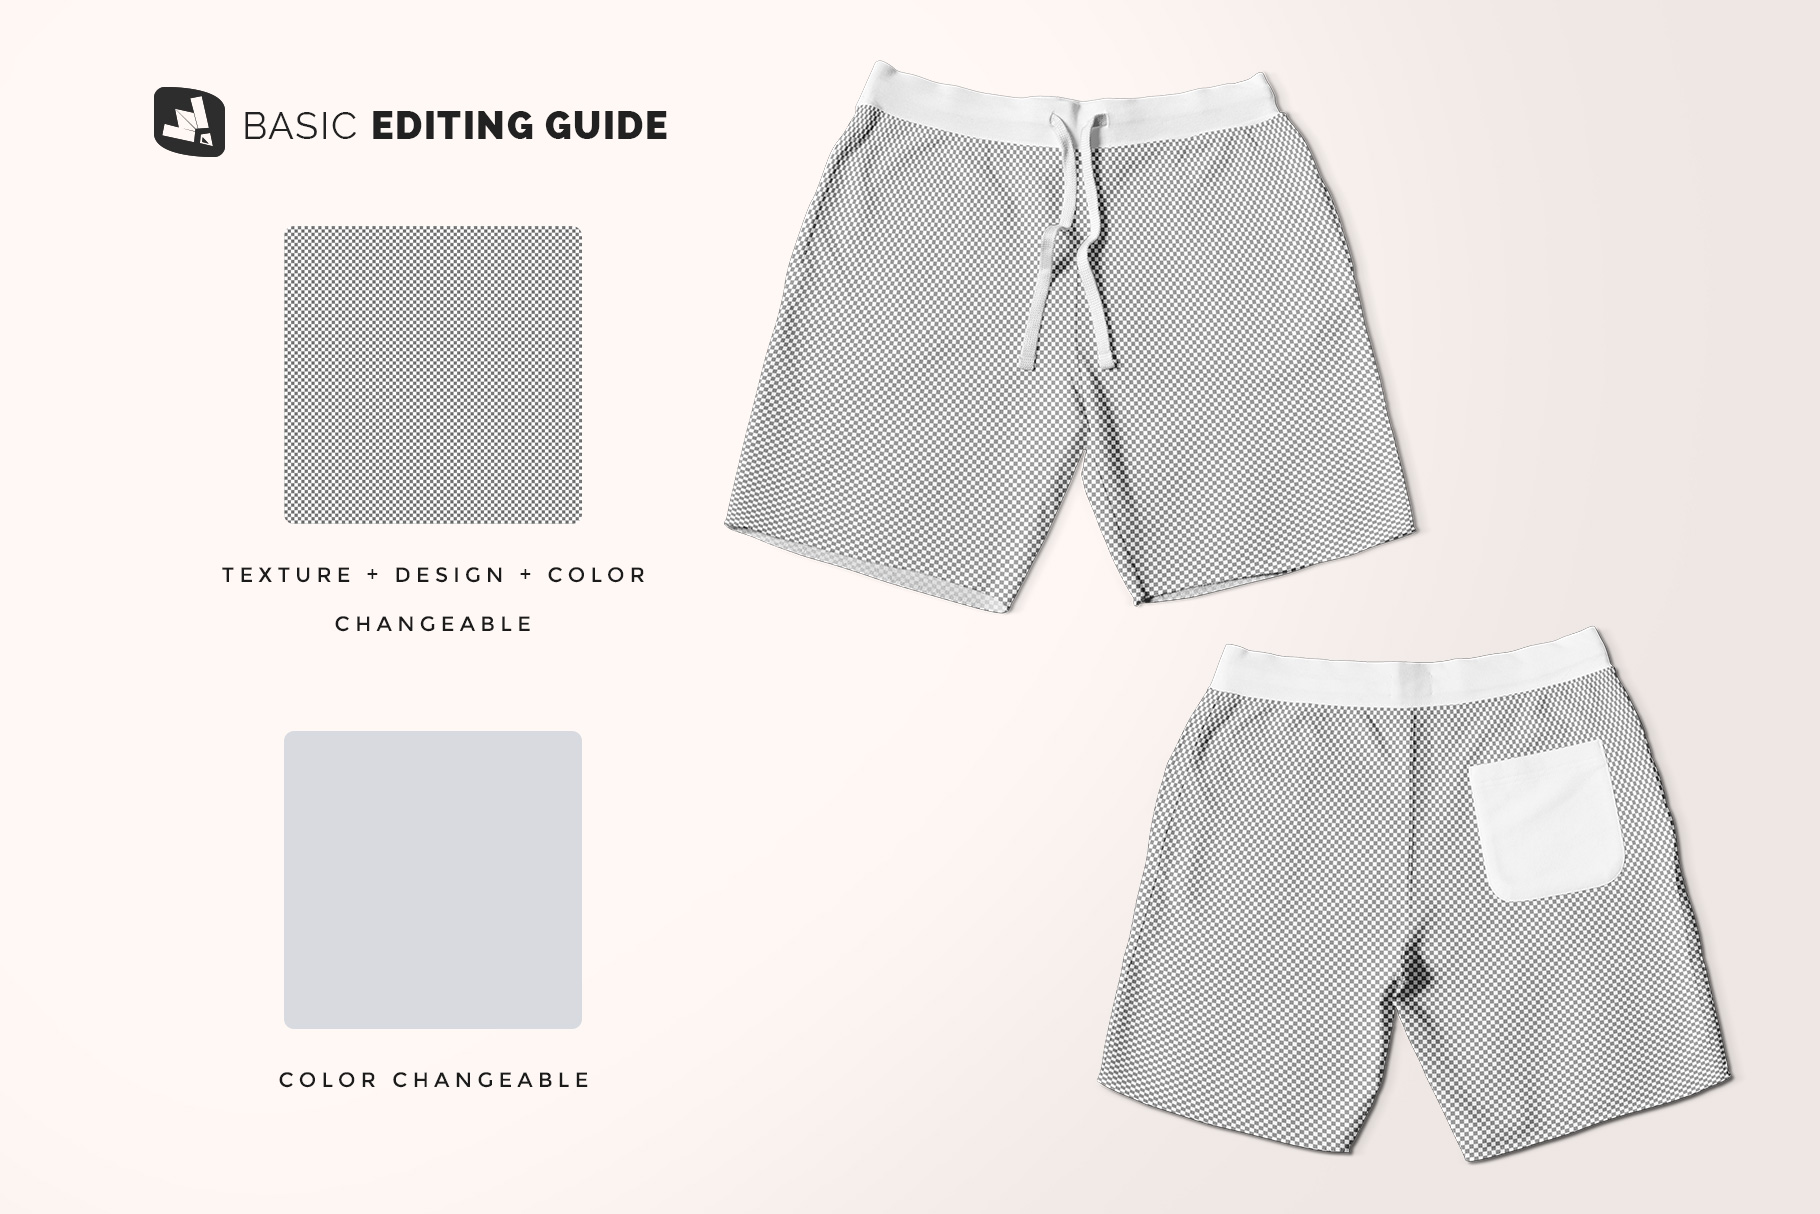 editability of the top view cotton shorts mockup